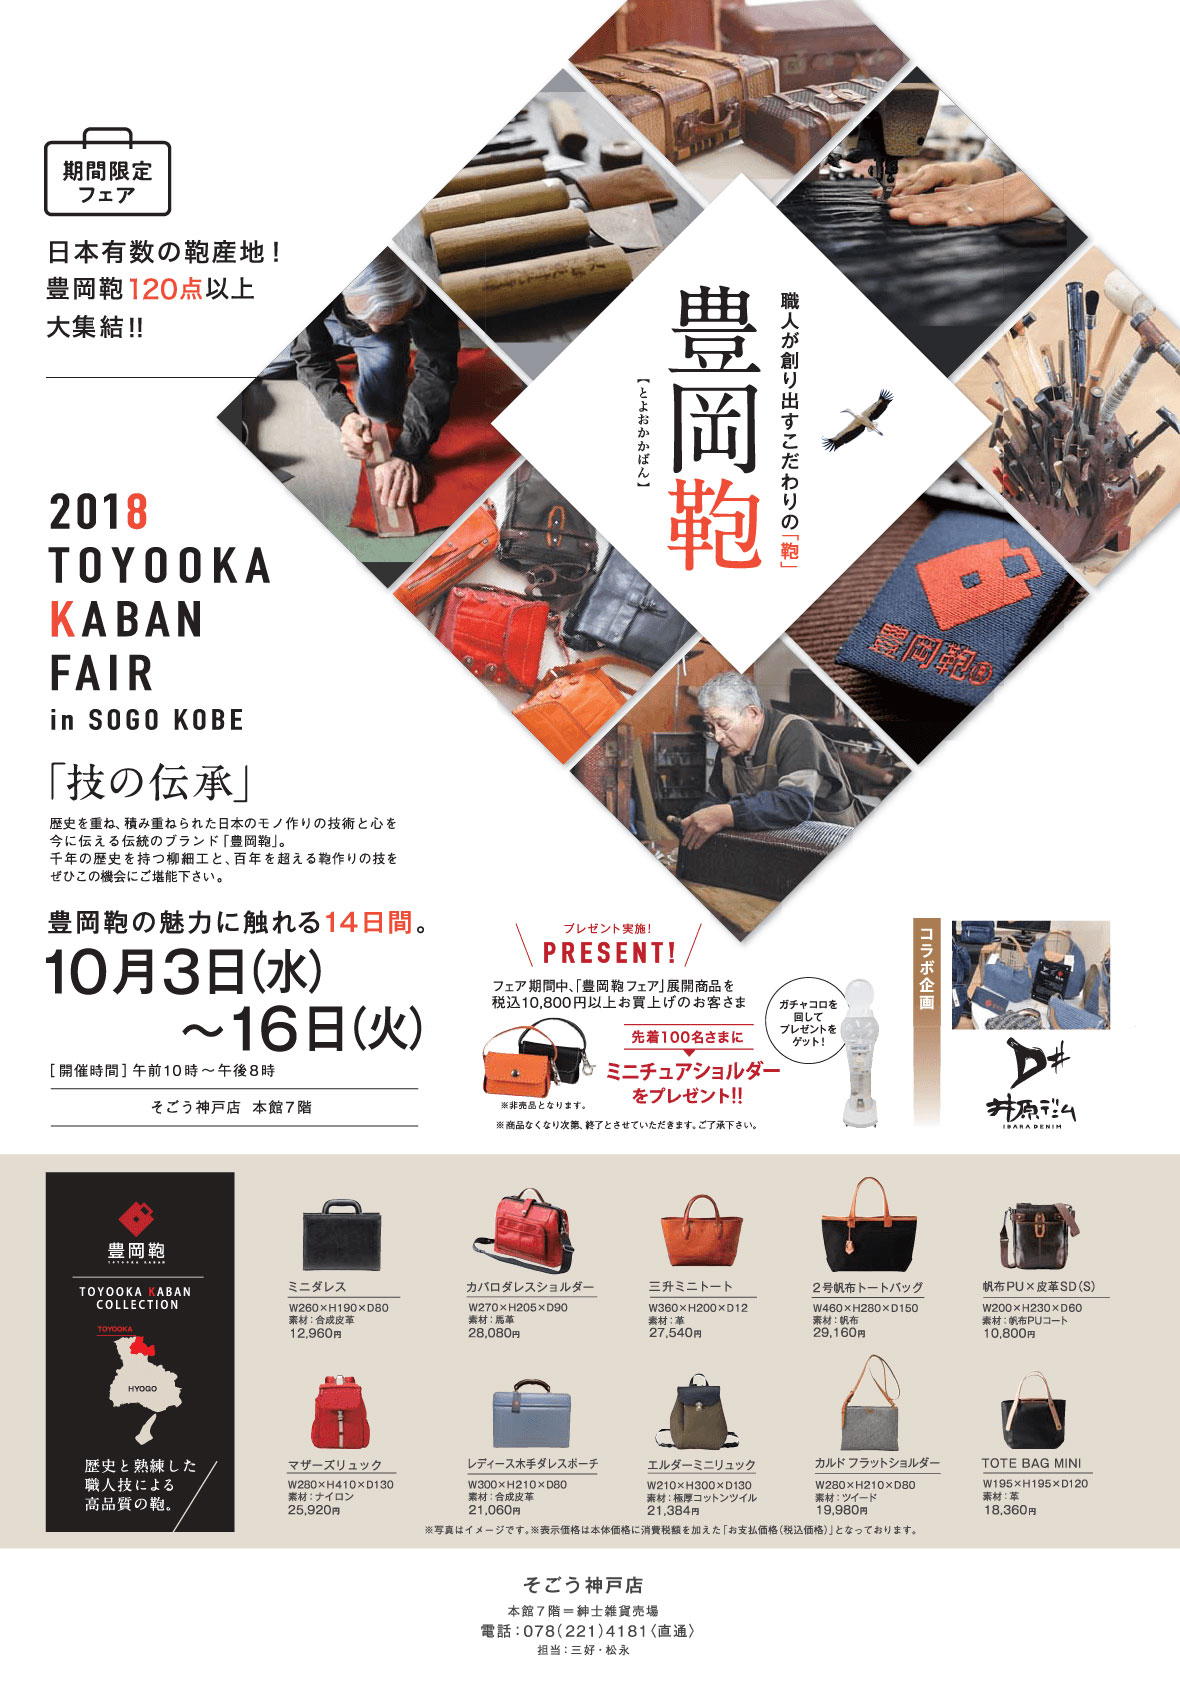 2018 TOYOOKA KABAN FAIR